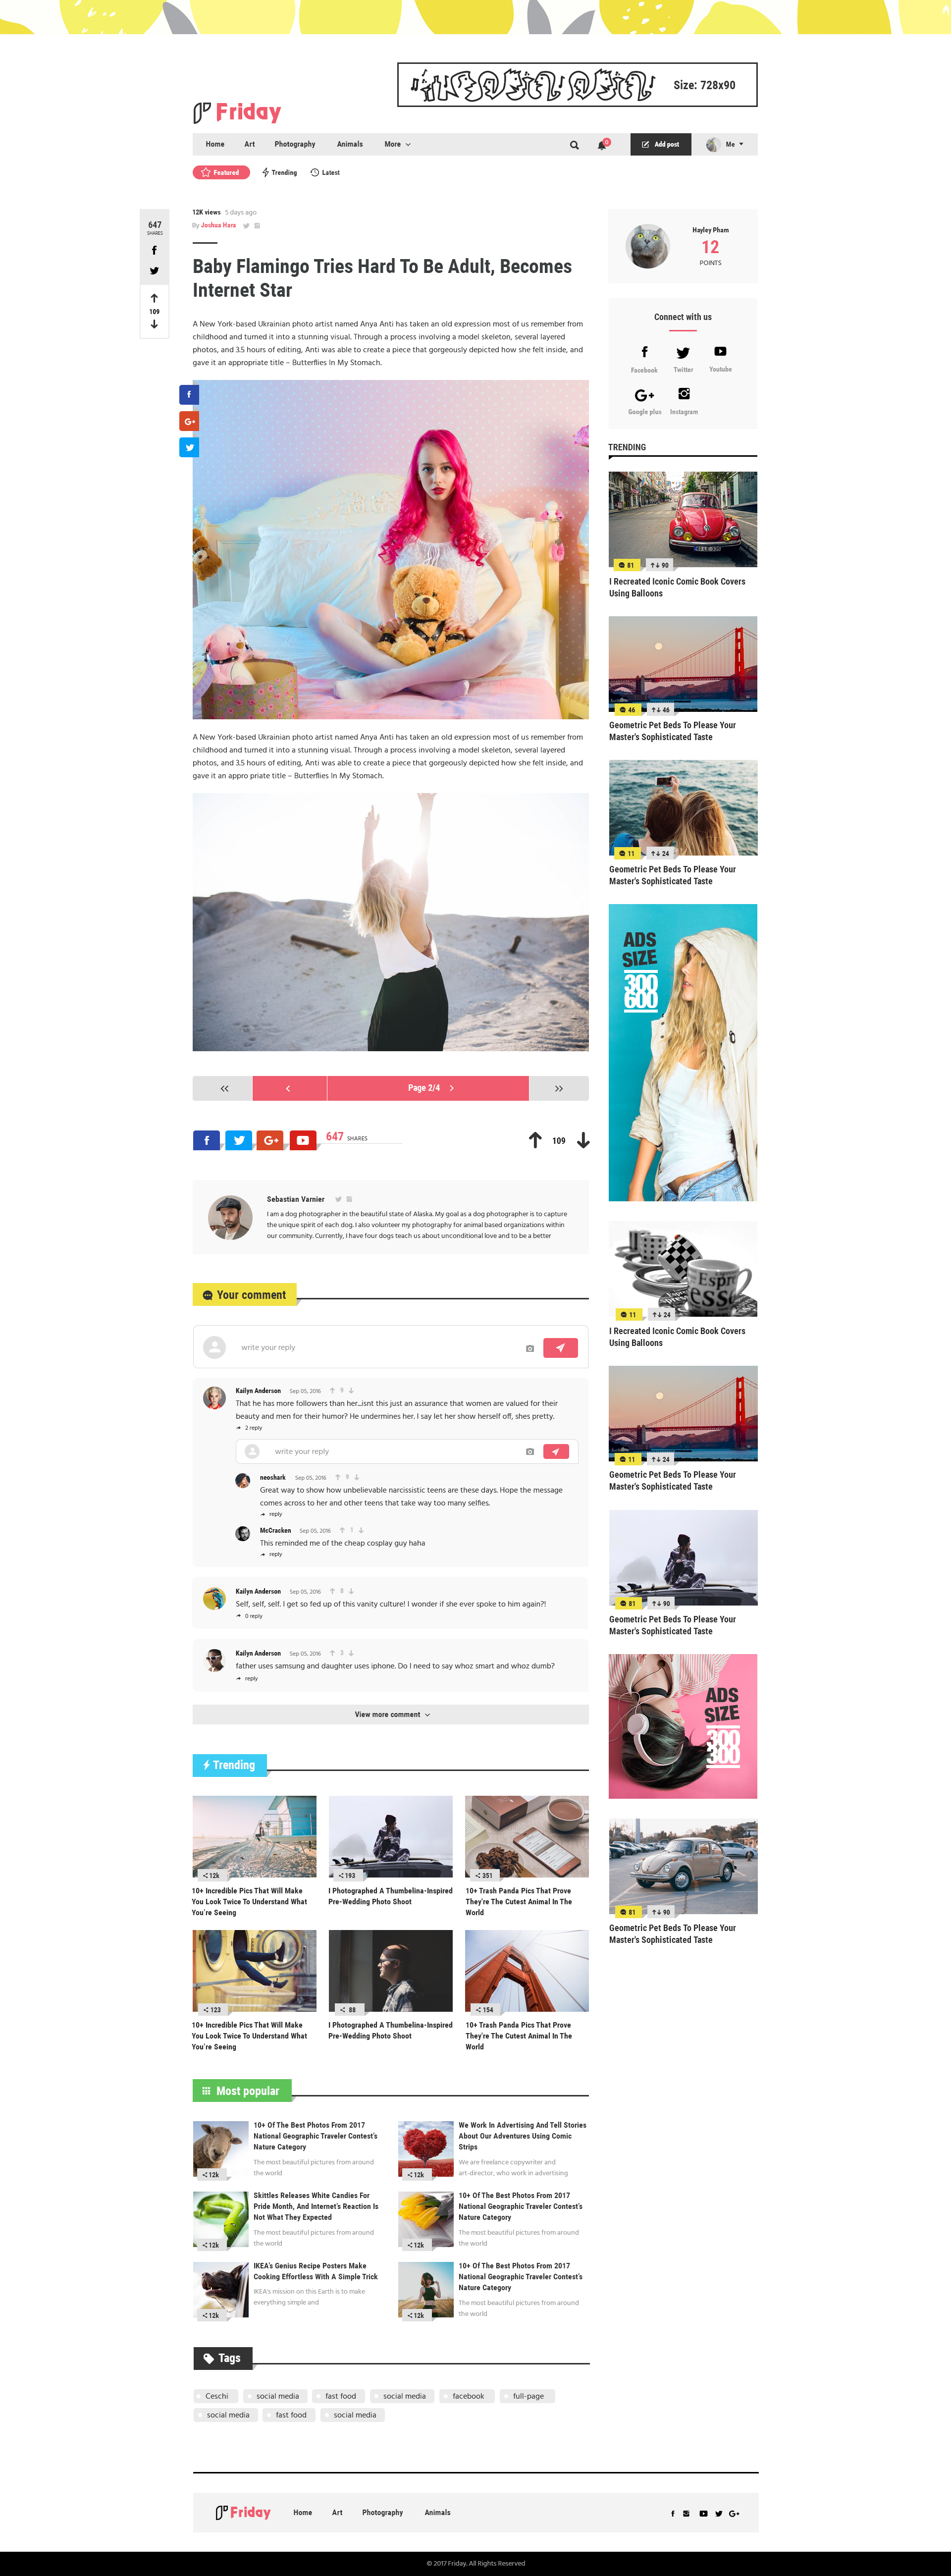 Friday PSD Template For Viral Content Website By Wpstylish - Photo contest website template